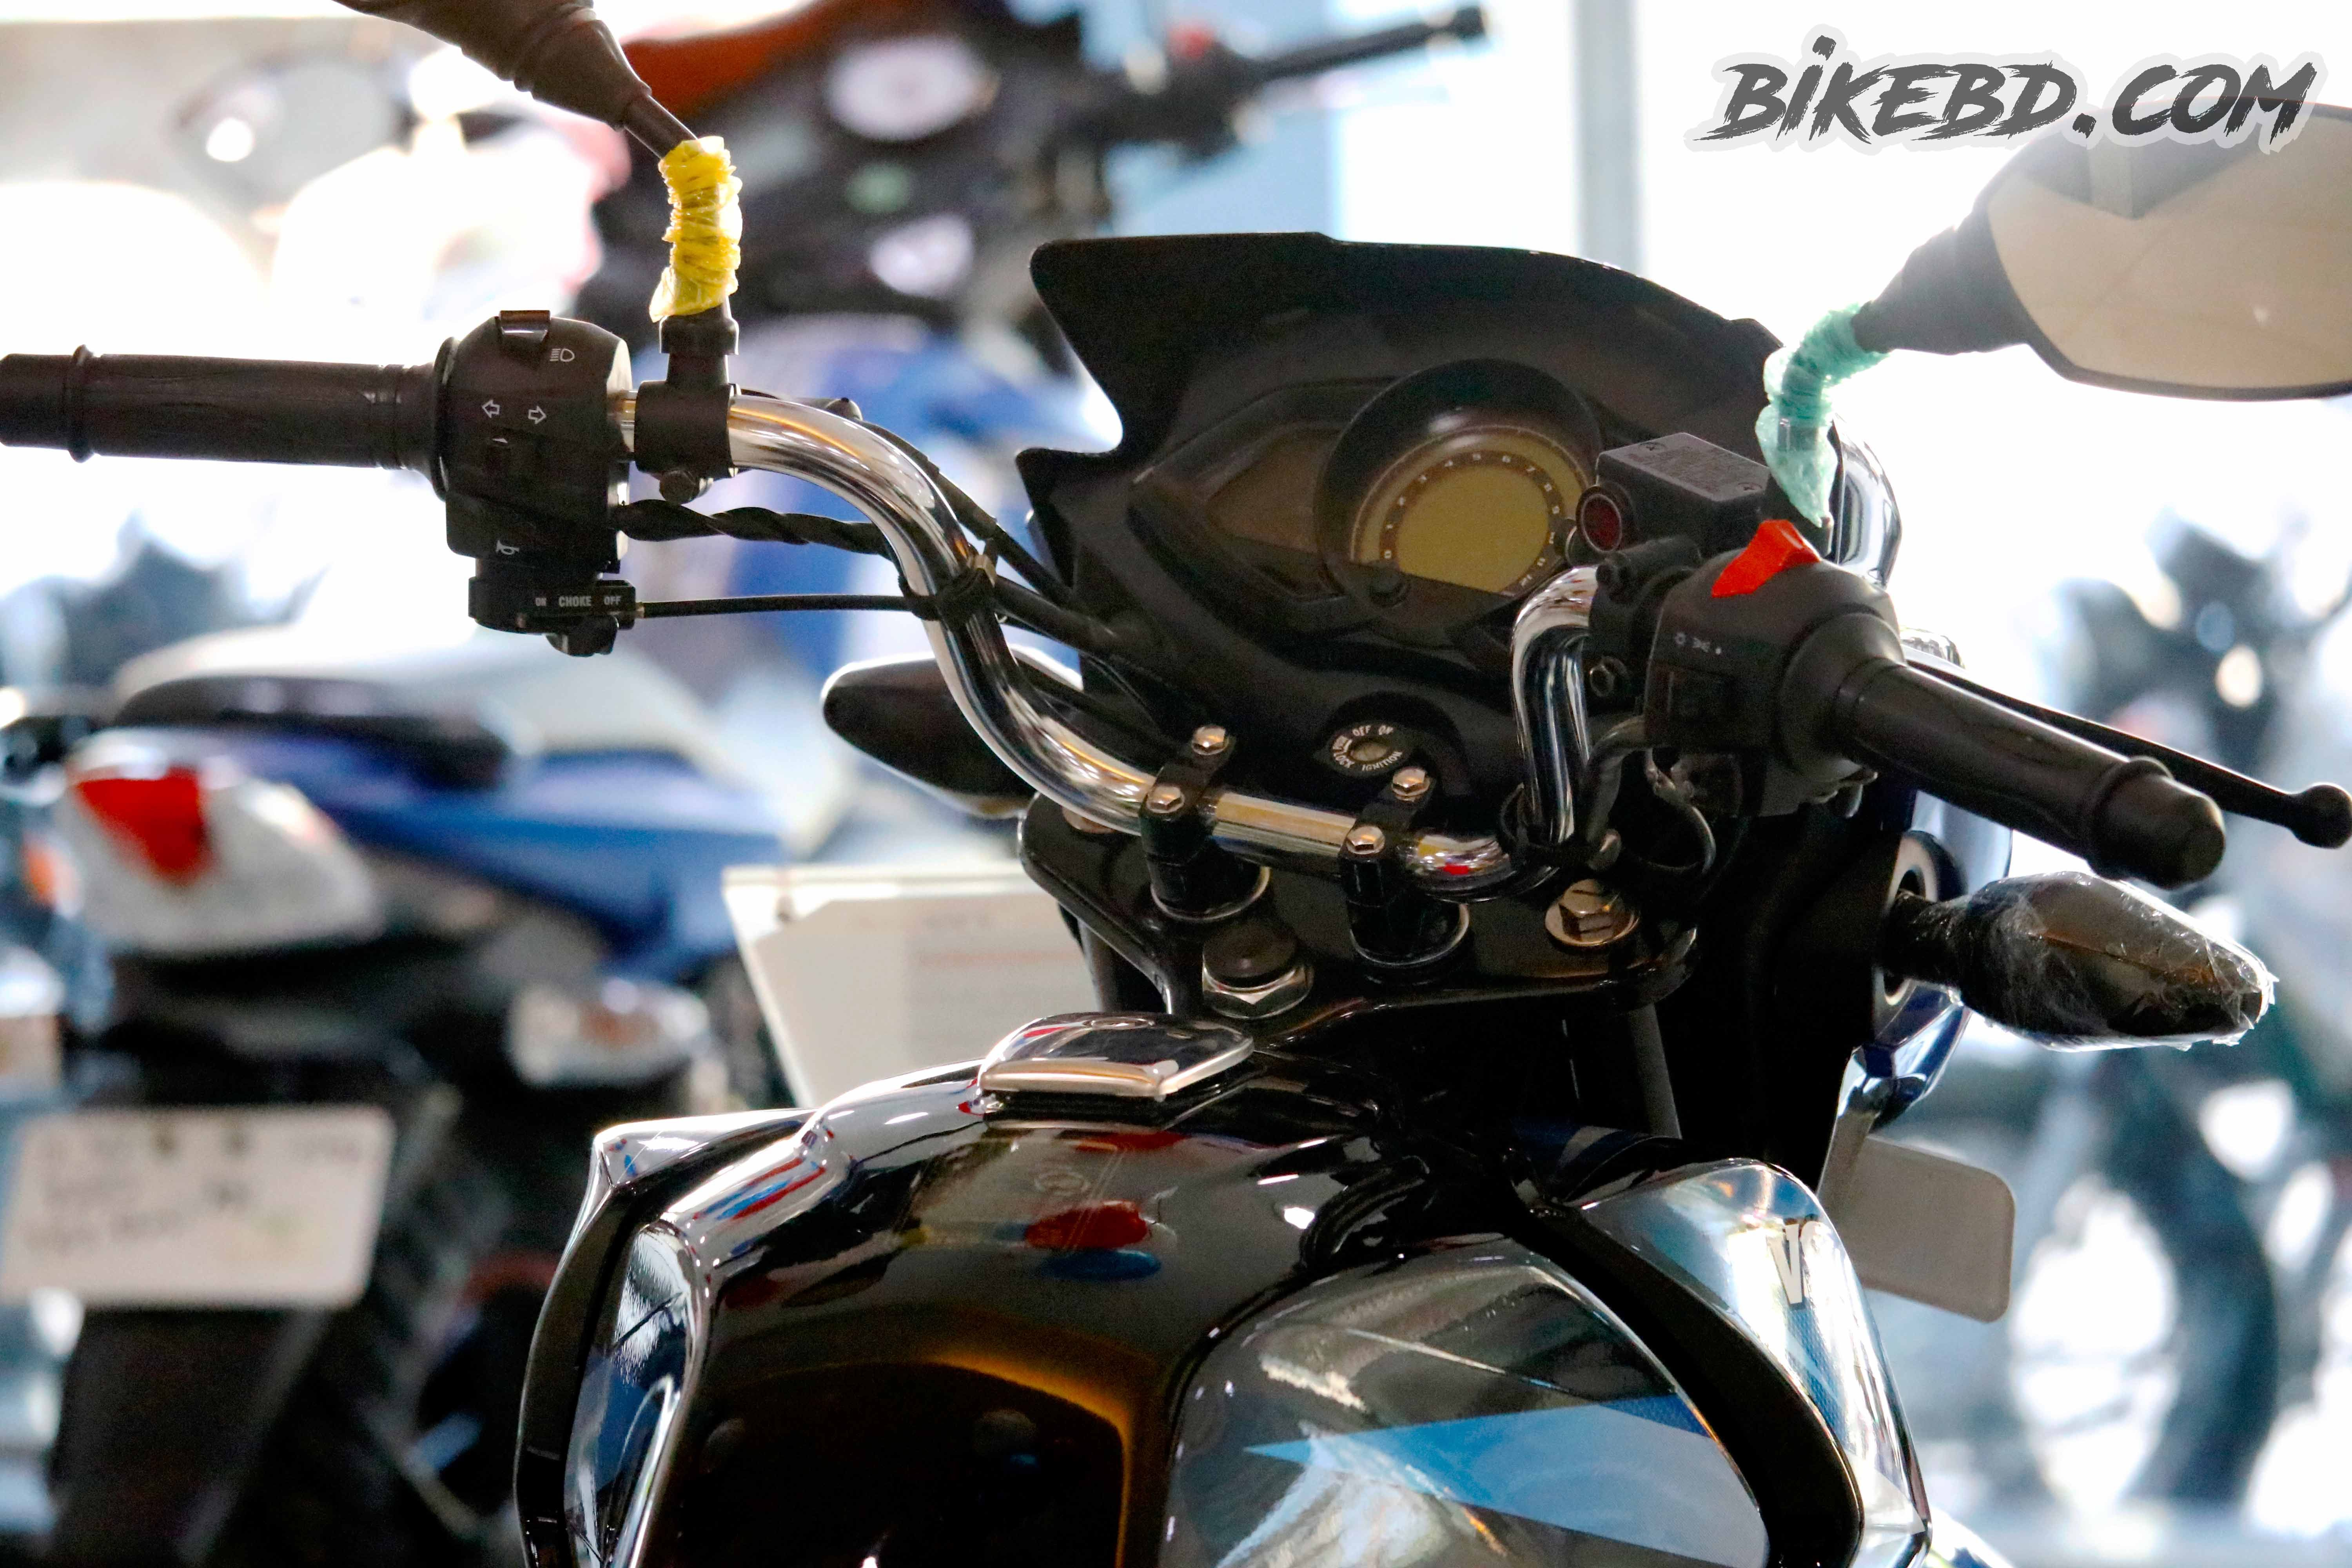 125cc Commuter Motorcycle Segment Is The Much Competitive Segment